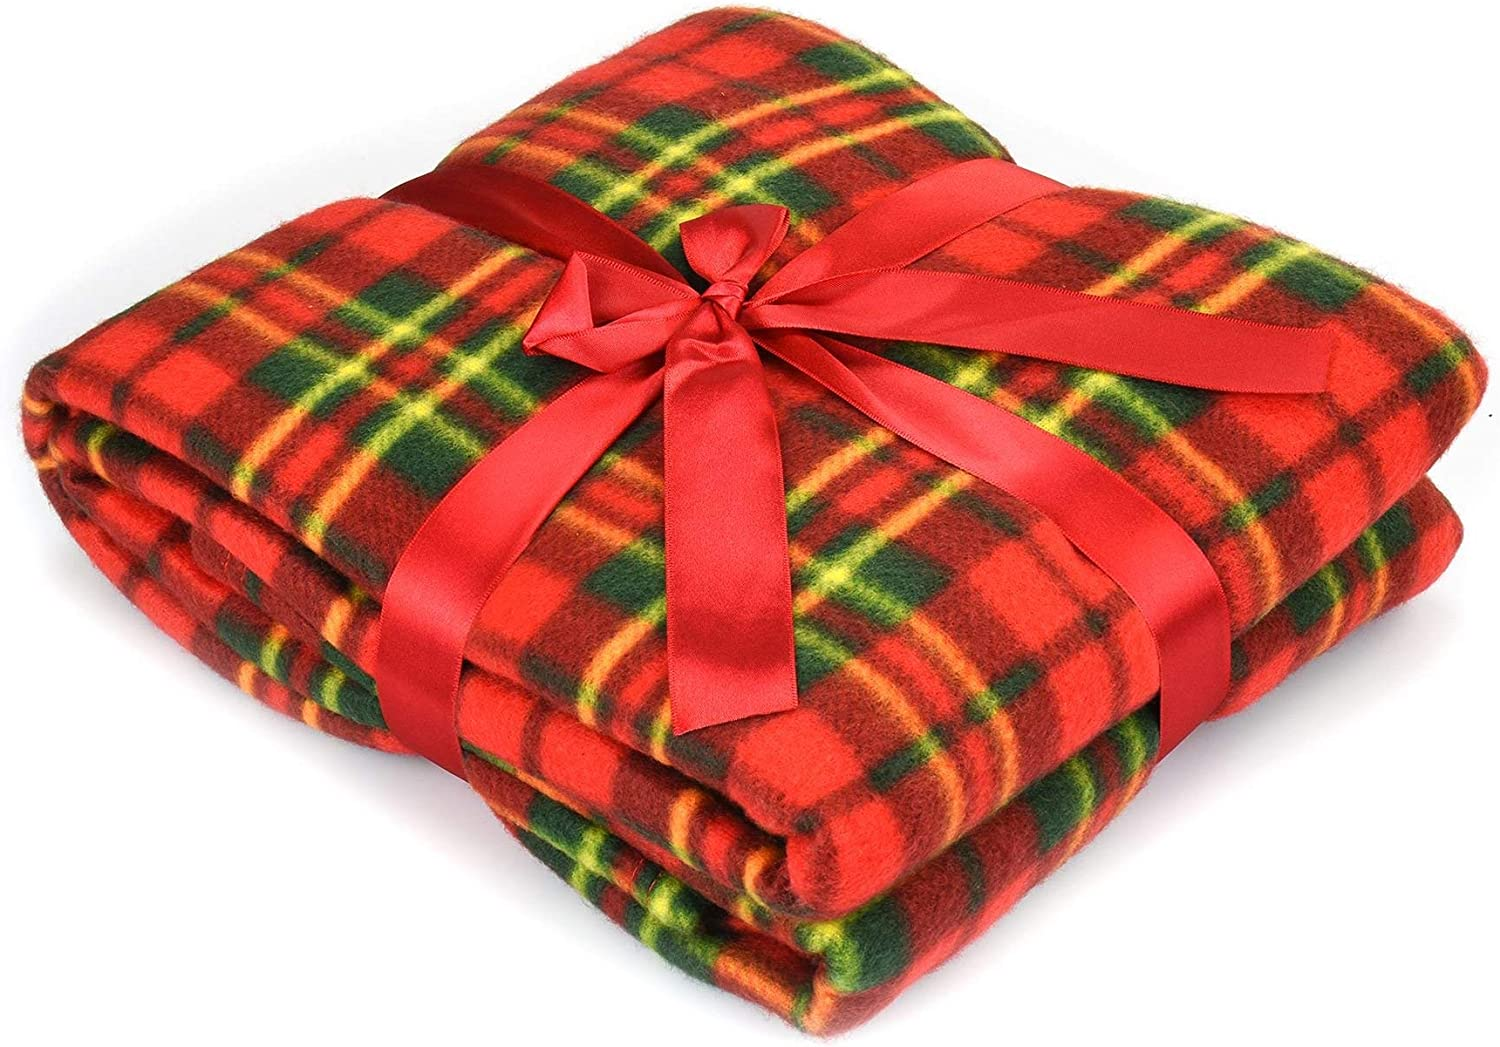 Soft and Warm Tartan Check Printed Fleece Throw for Sofa Bed Travel Car Blanket 120x150cm Red